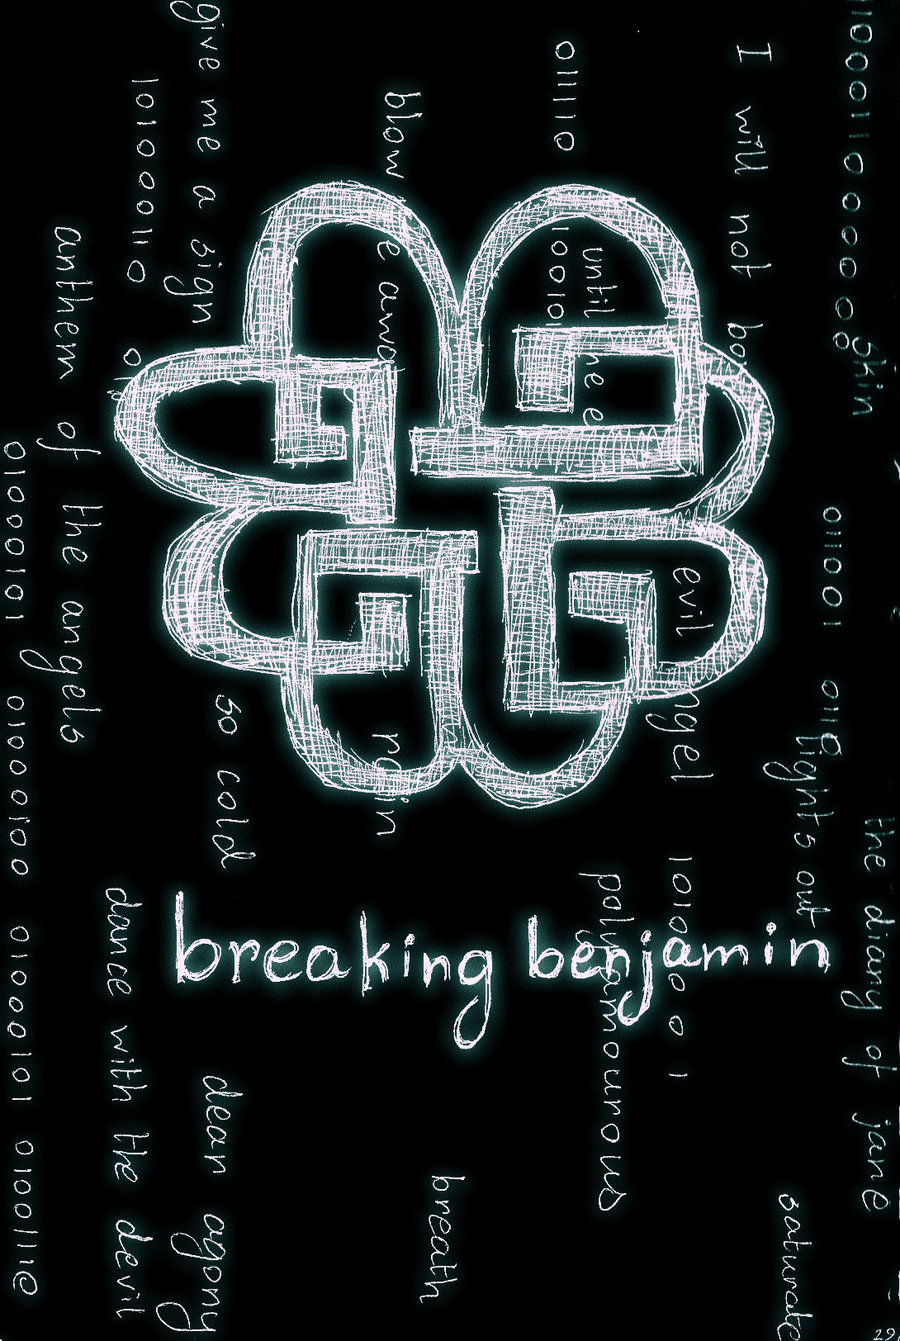 Breaking Benjamin Wallpaper 23   900 X 1341 stmednet 900x1341